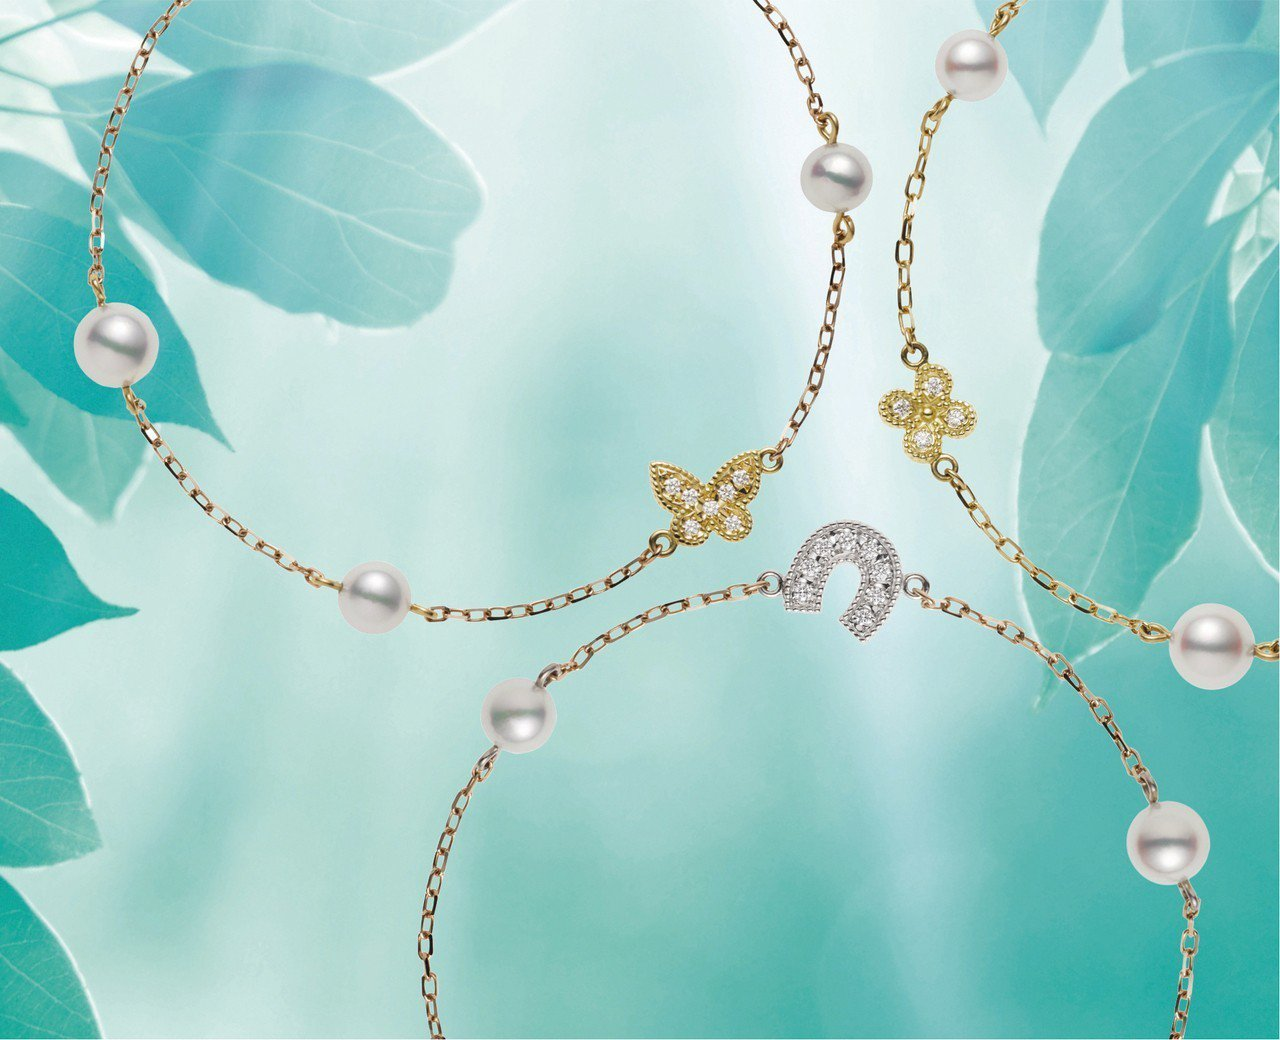 MIKIMOTO Lucky Motif Collection 手鍊作品情境圖。...